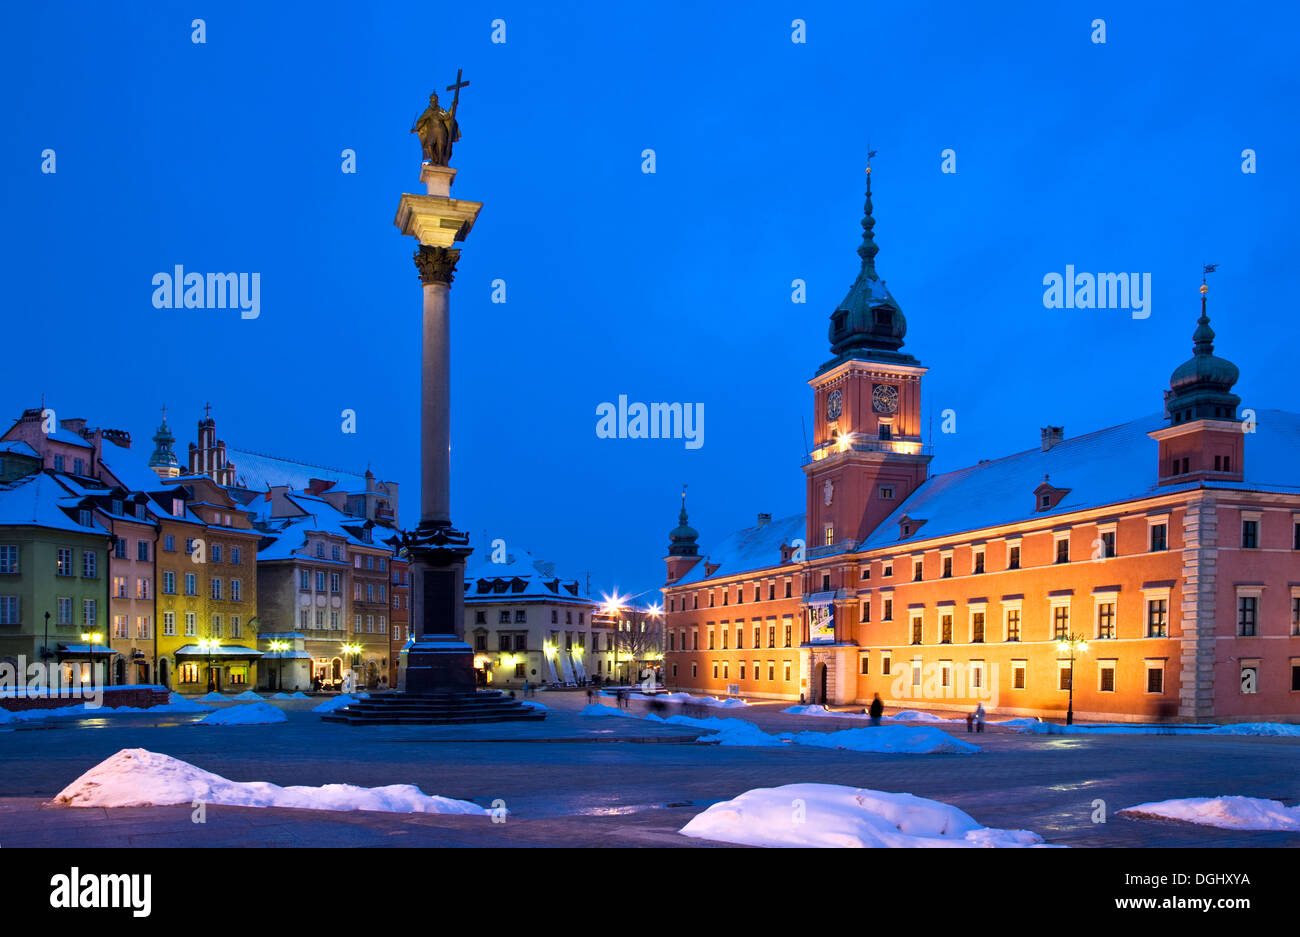 Winter twilight in Castle Square in Warsaw with Zygmunt's Column and the Royal Castle illuminated. - Stock Image